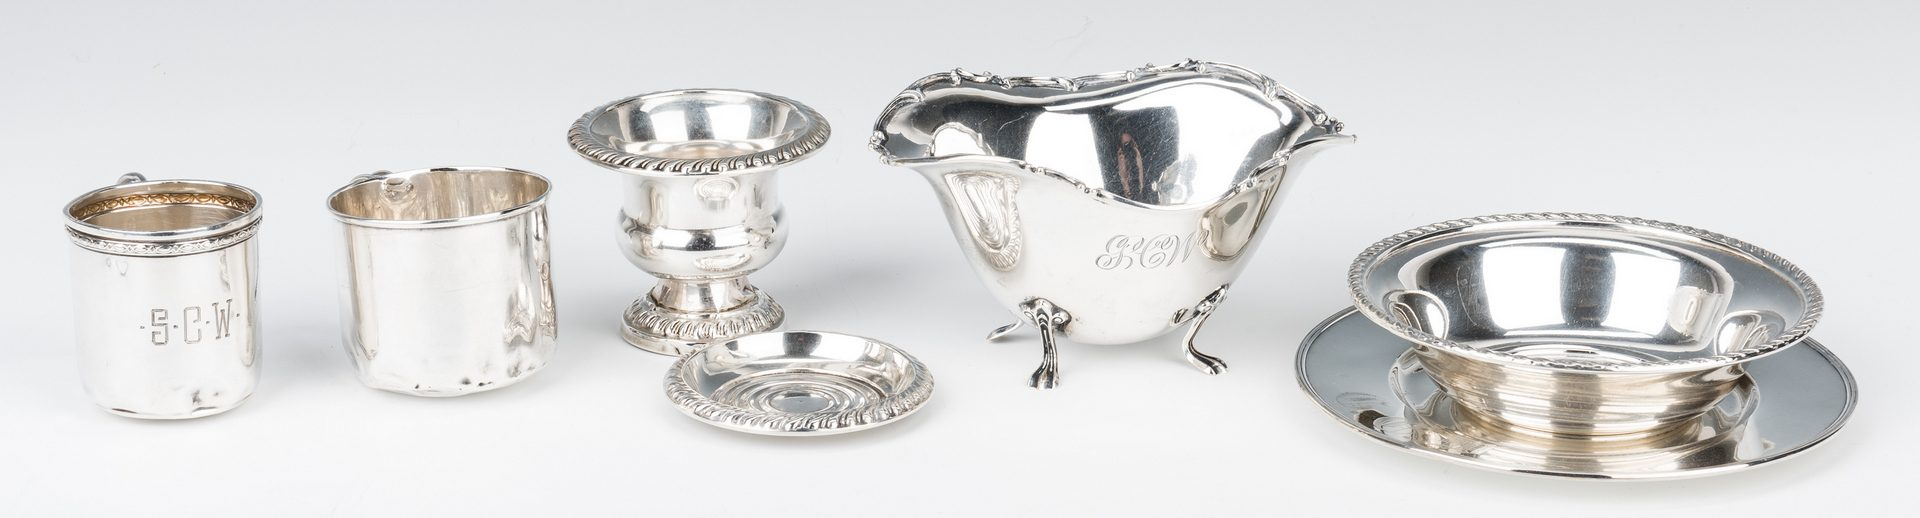 Lot 716: 50 pcs. Assorted Sterling Silver, incl. Gorham Chantilly